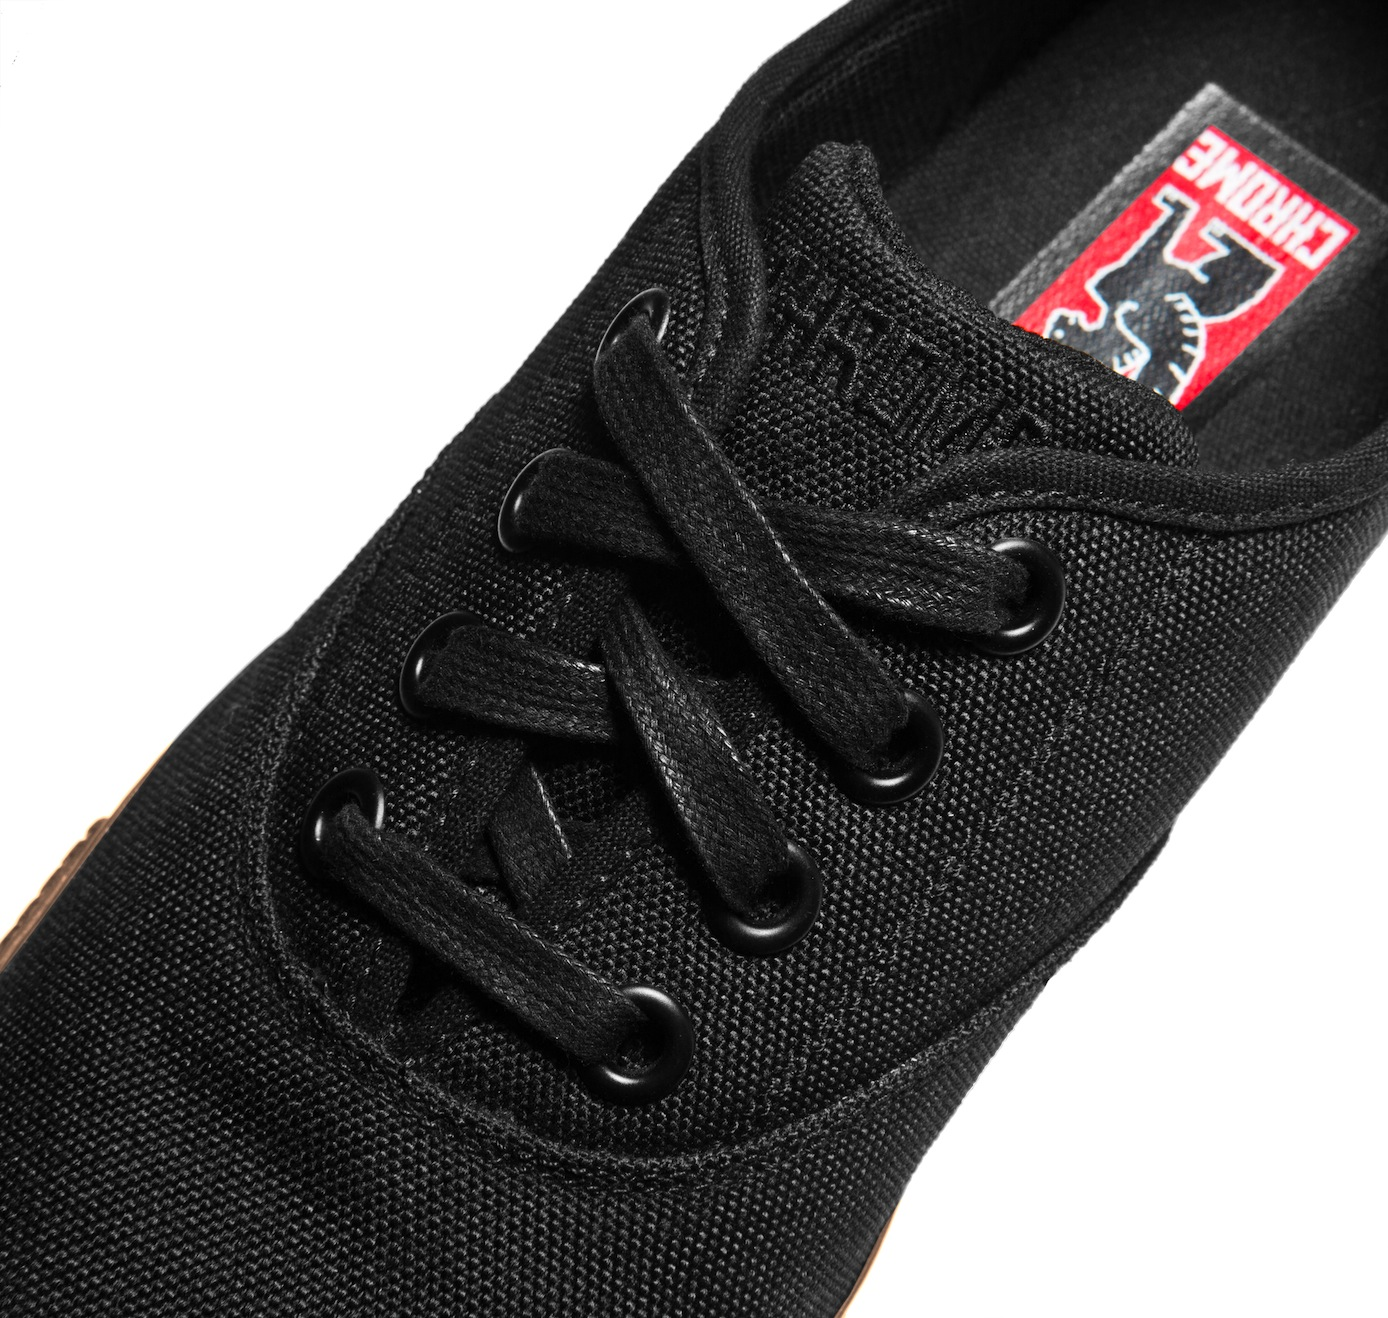 Truk Black Gum Tongue Detail